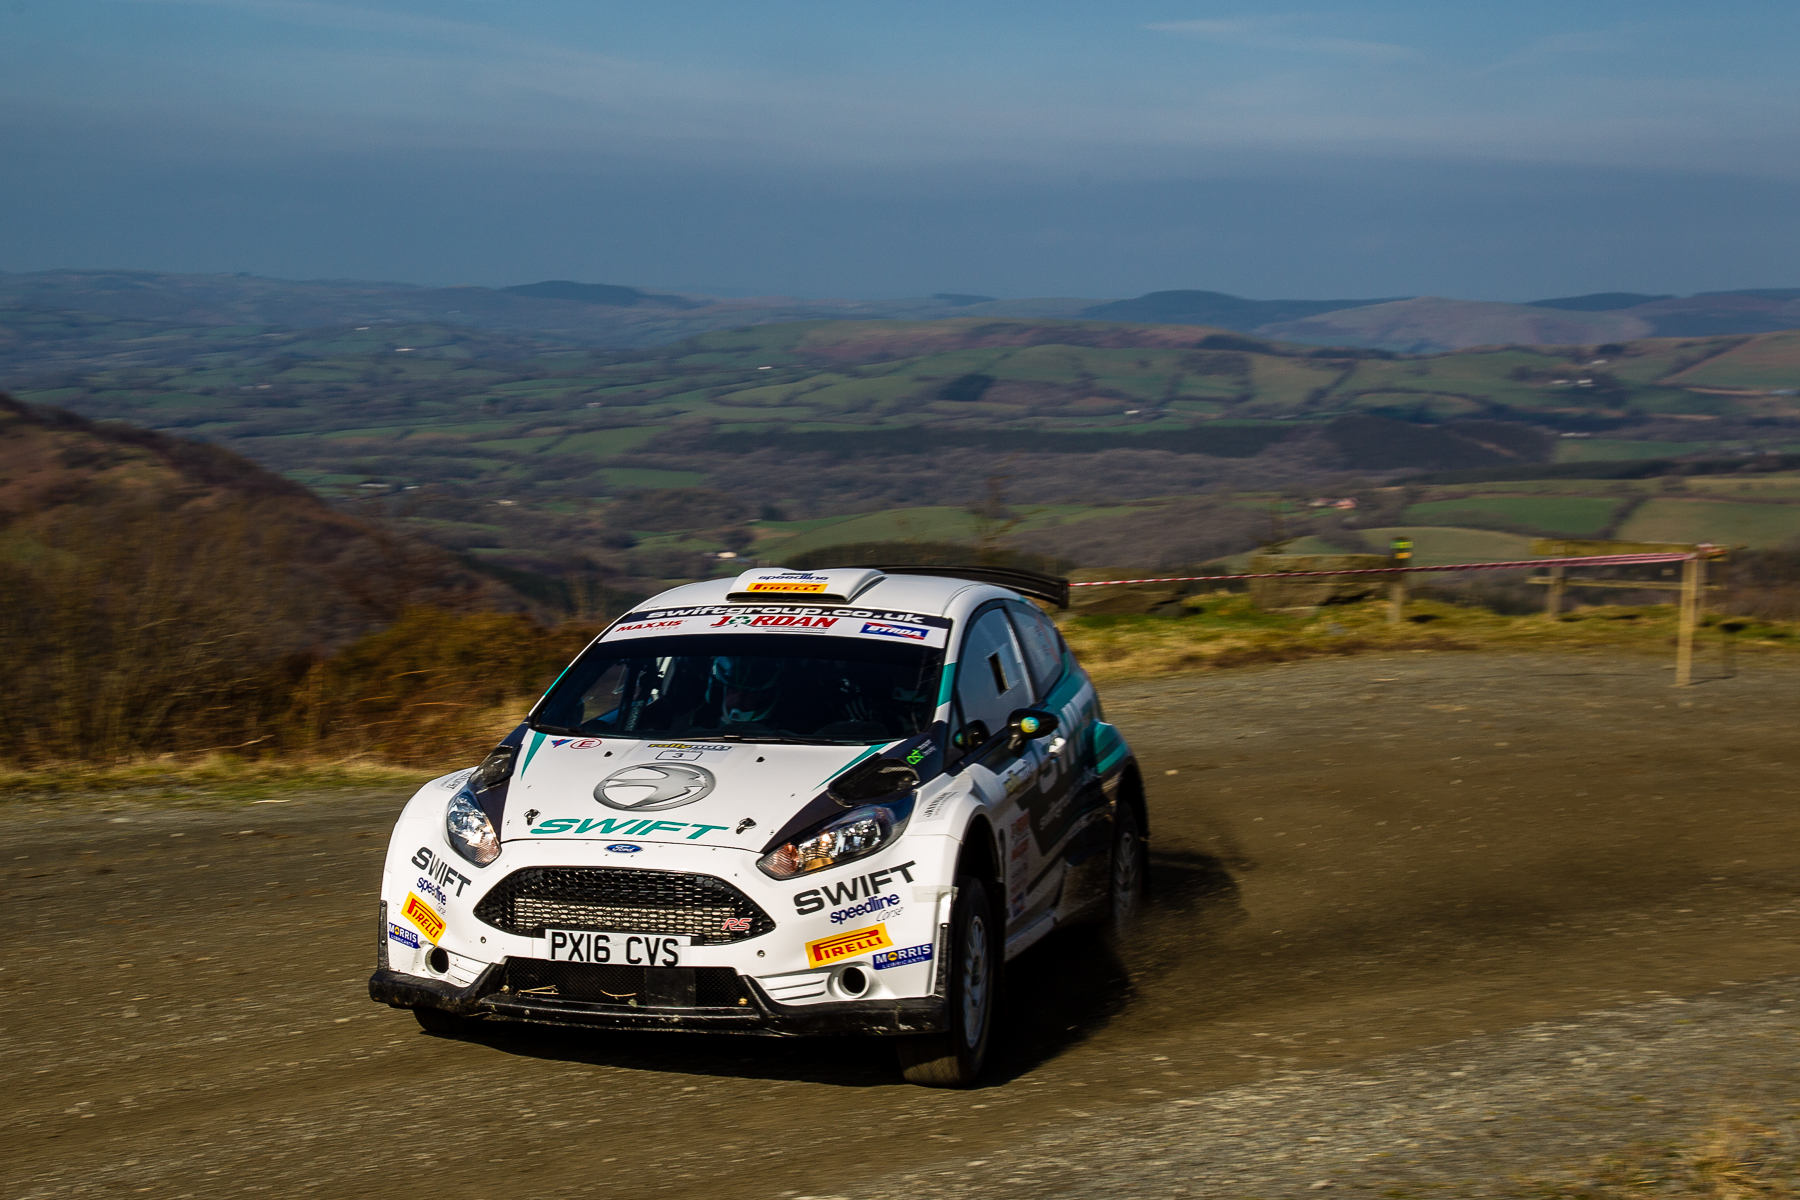 Edwards storms to maiden BTRDA win at Rallynuts Stages | The ...